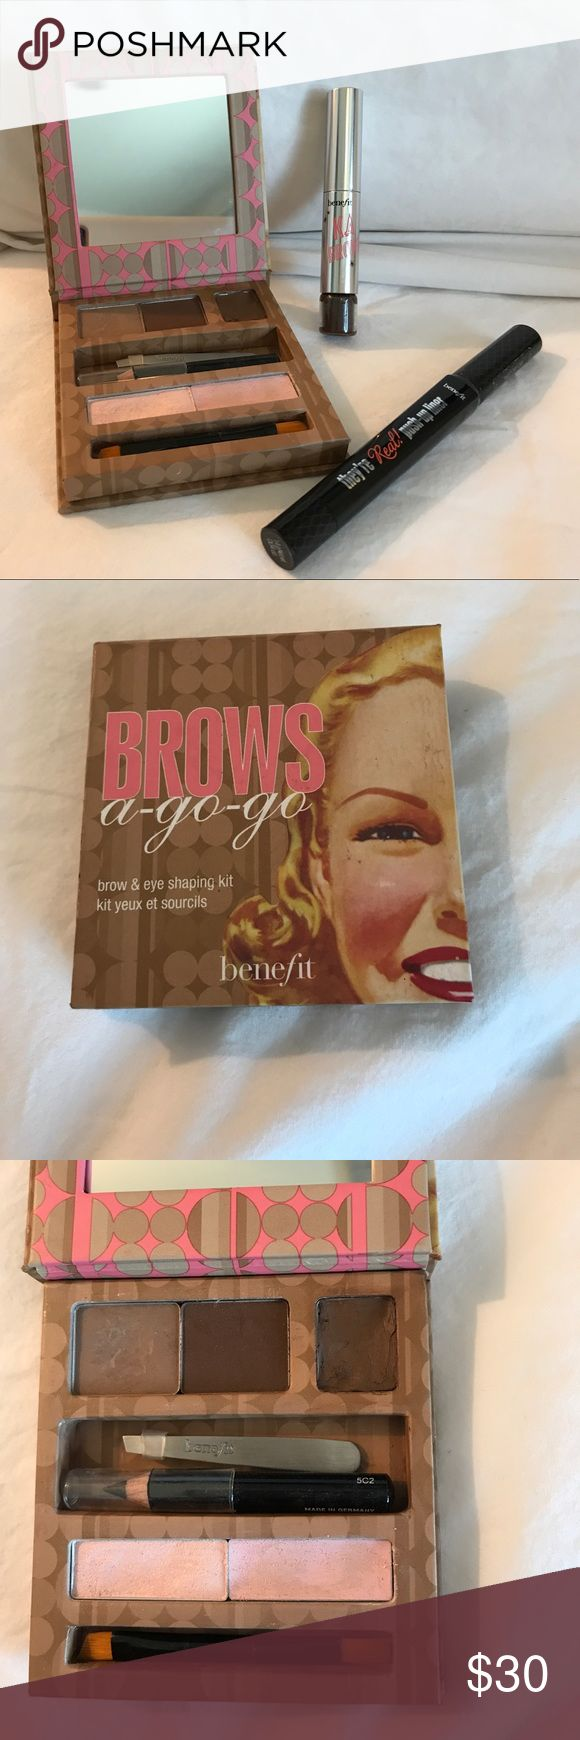 Benefit cosmetics bundle Benefit cosmetics brows a-go-go(gently used), ka bro 5 (new out of box), & They're real push up liner (new out of box) Makeup Eyeliner